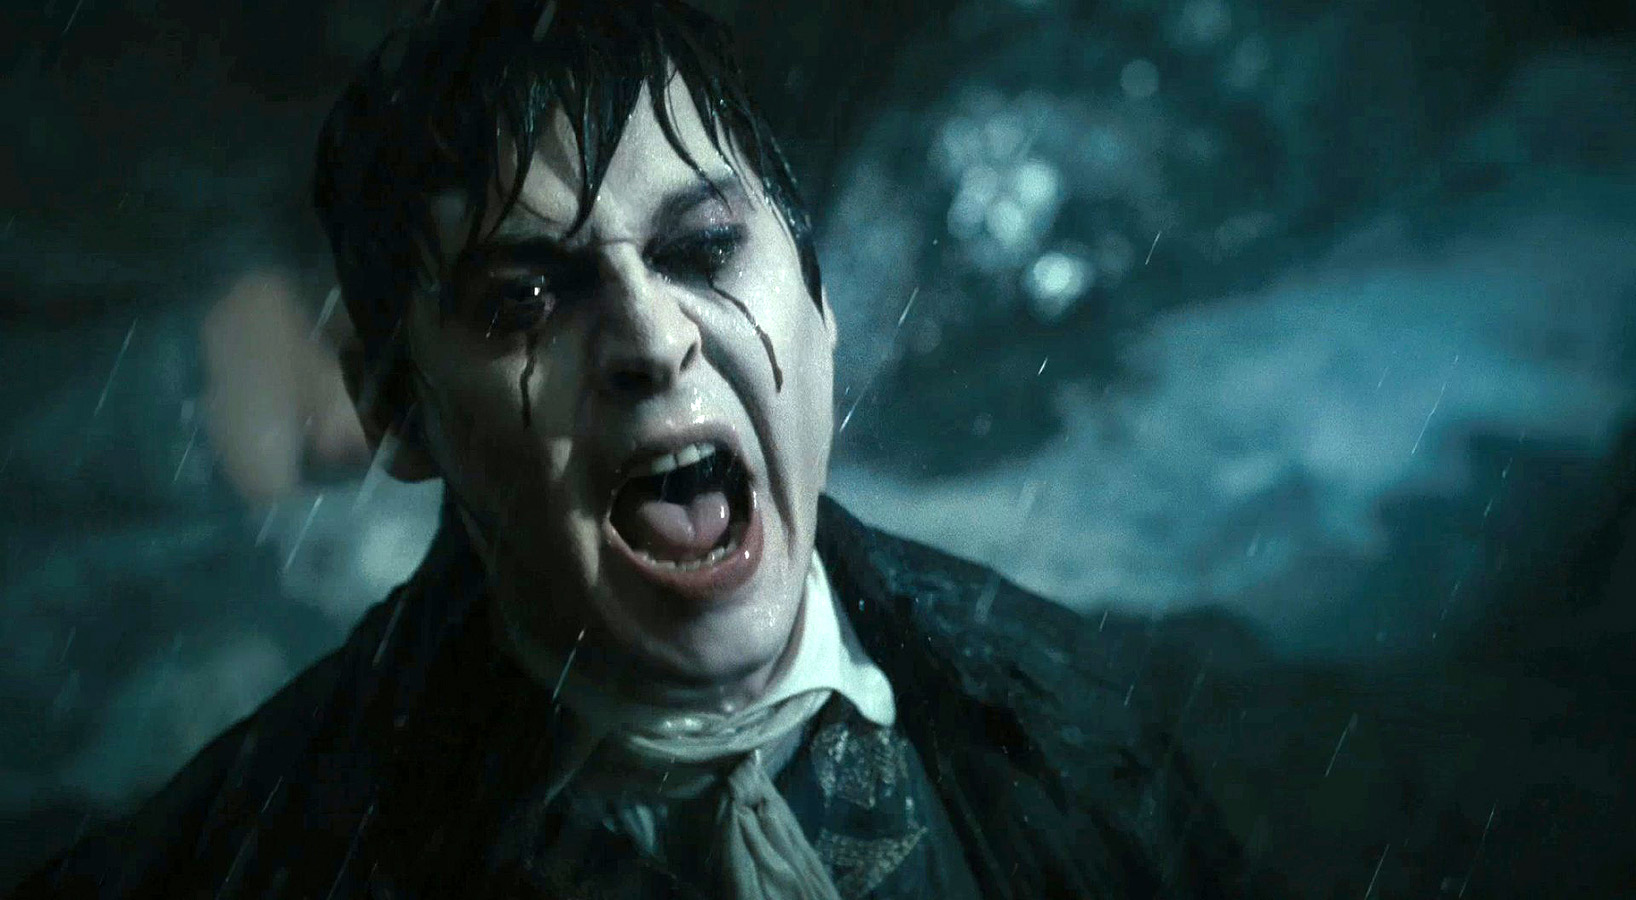 an analysis of the character of vampires depicted in novels and movies Real vampires amongst us undead dracula is a major character in more movies than any other but sherlock holmes regardless of the seductive aura of the vampire depicted in contemporary novels.